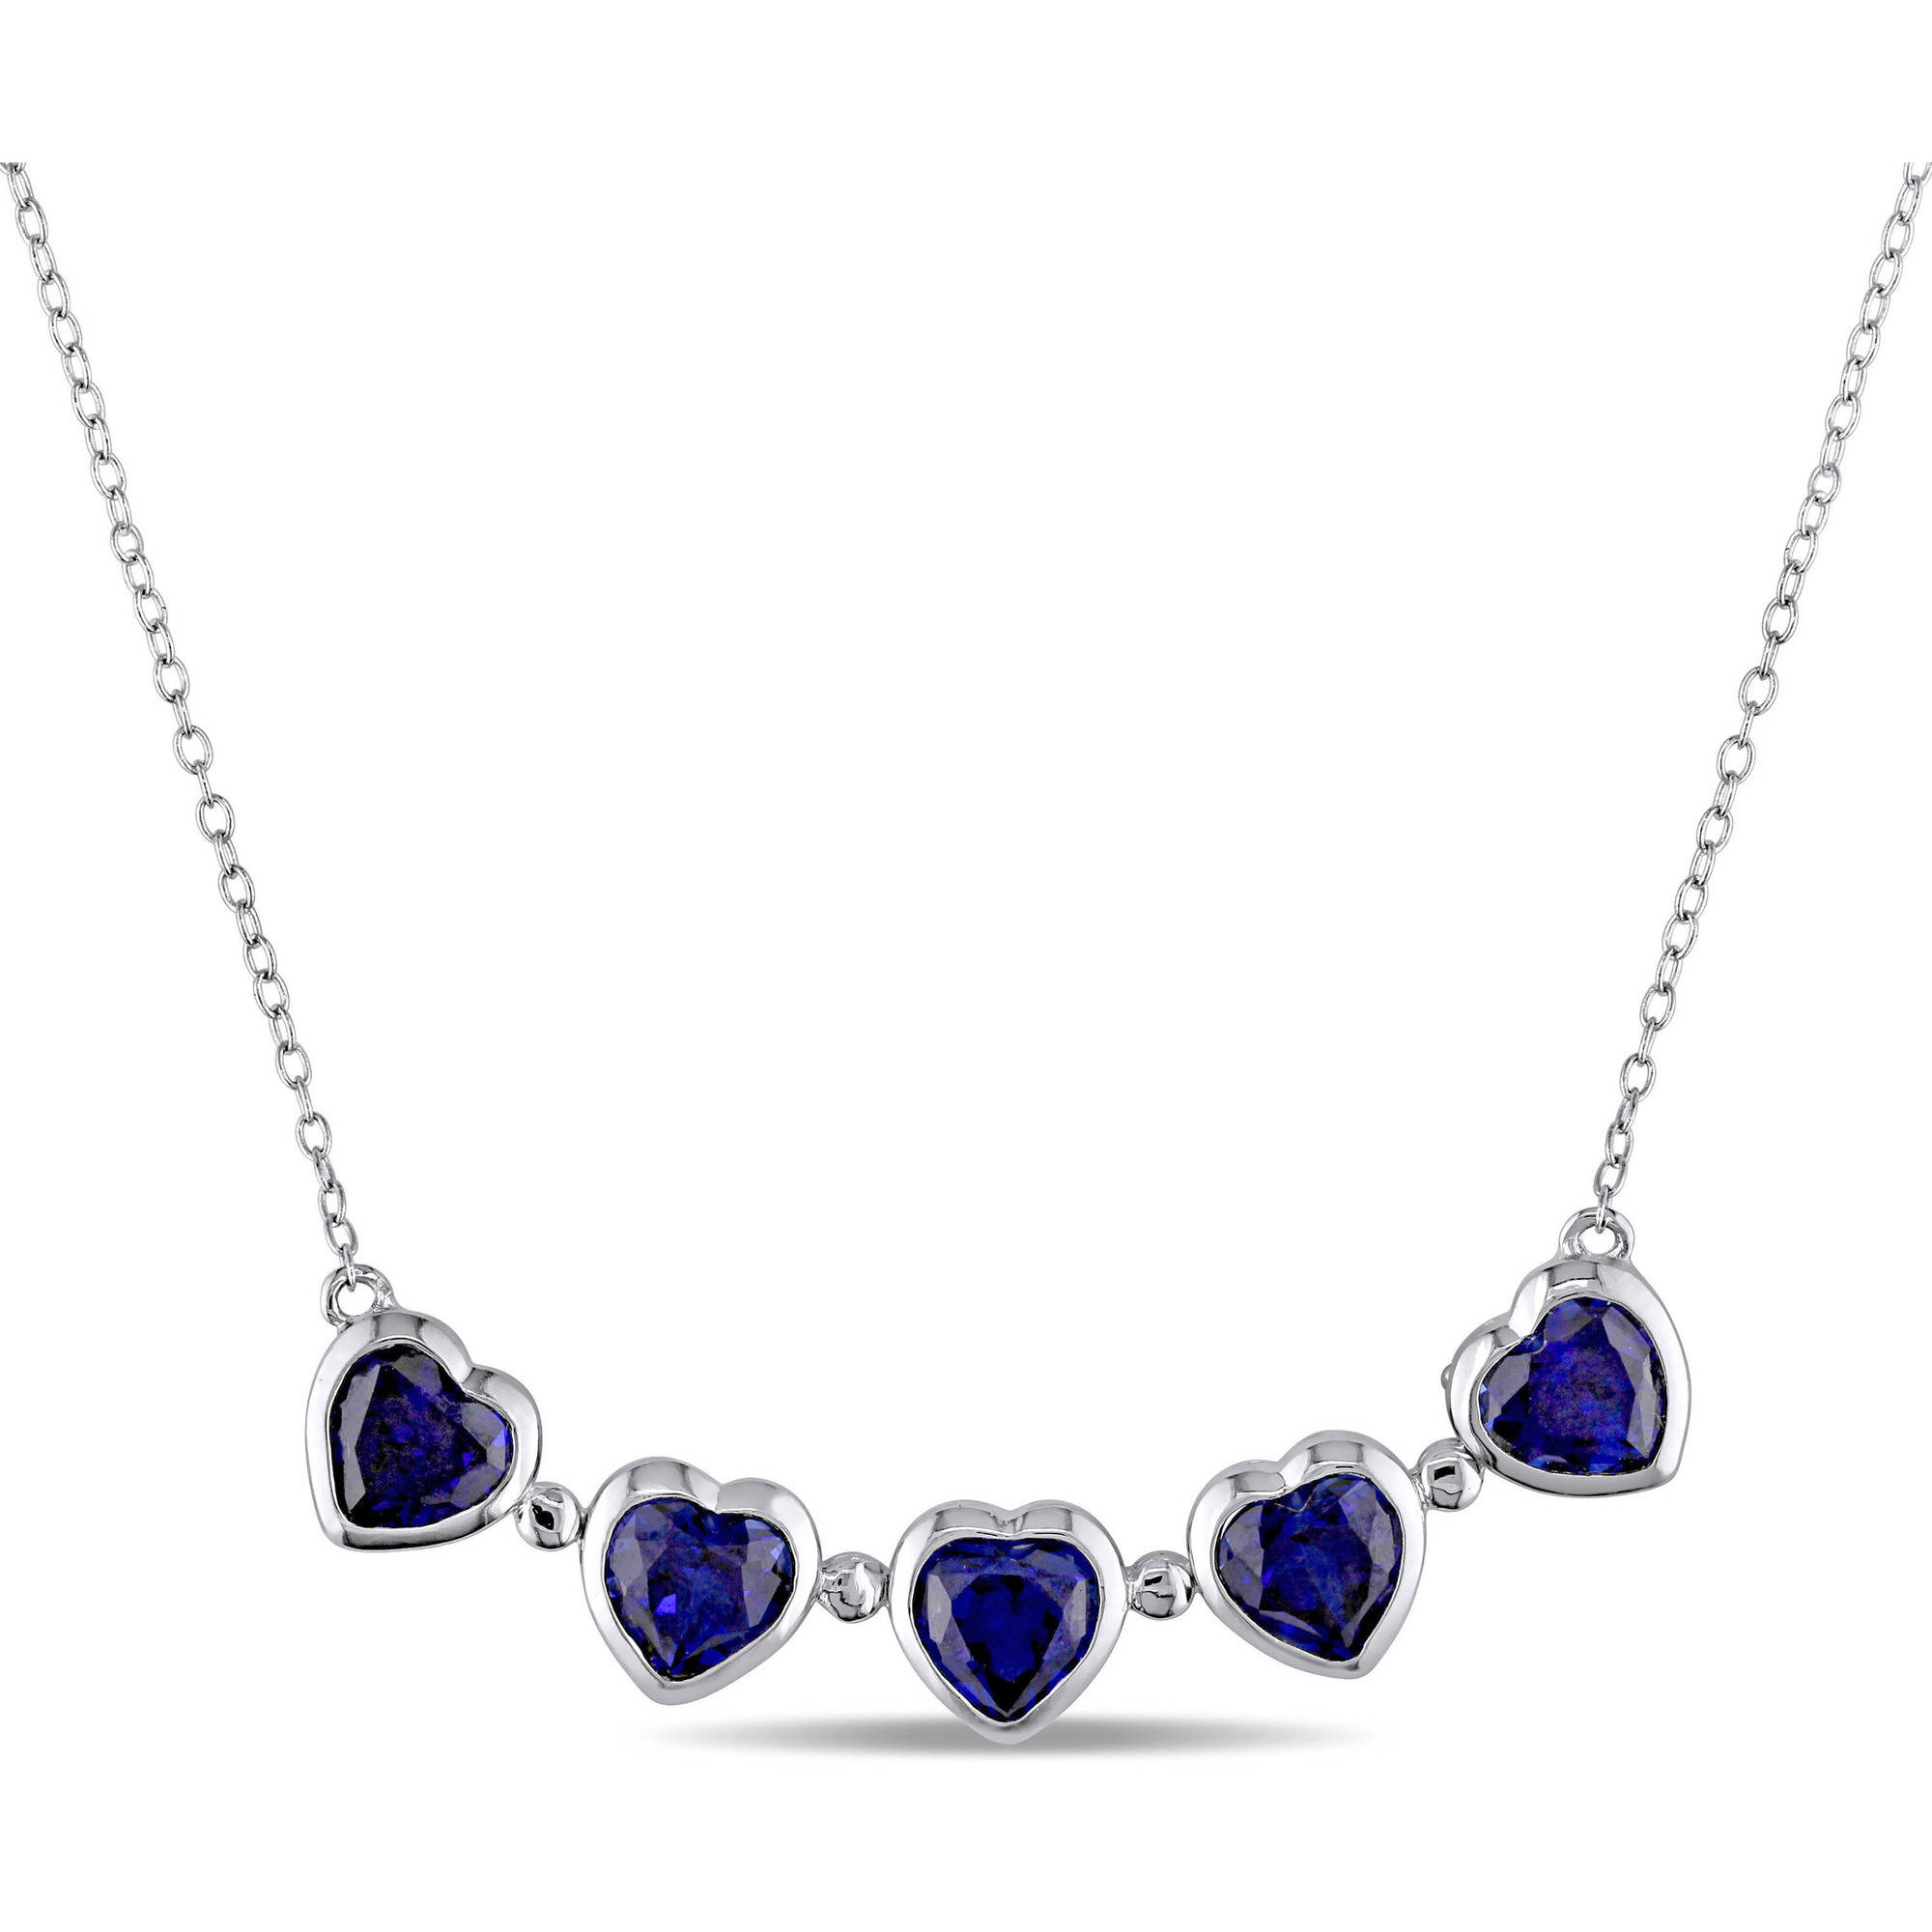 "Tangelo 4-1 2 Carat T.G.W. Created Blue Sapphire Sterling Silver Vintage Multi-Heart Necklace, 18"" by Tangelo"